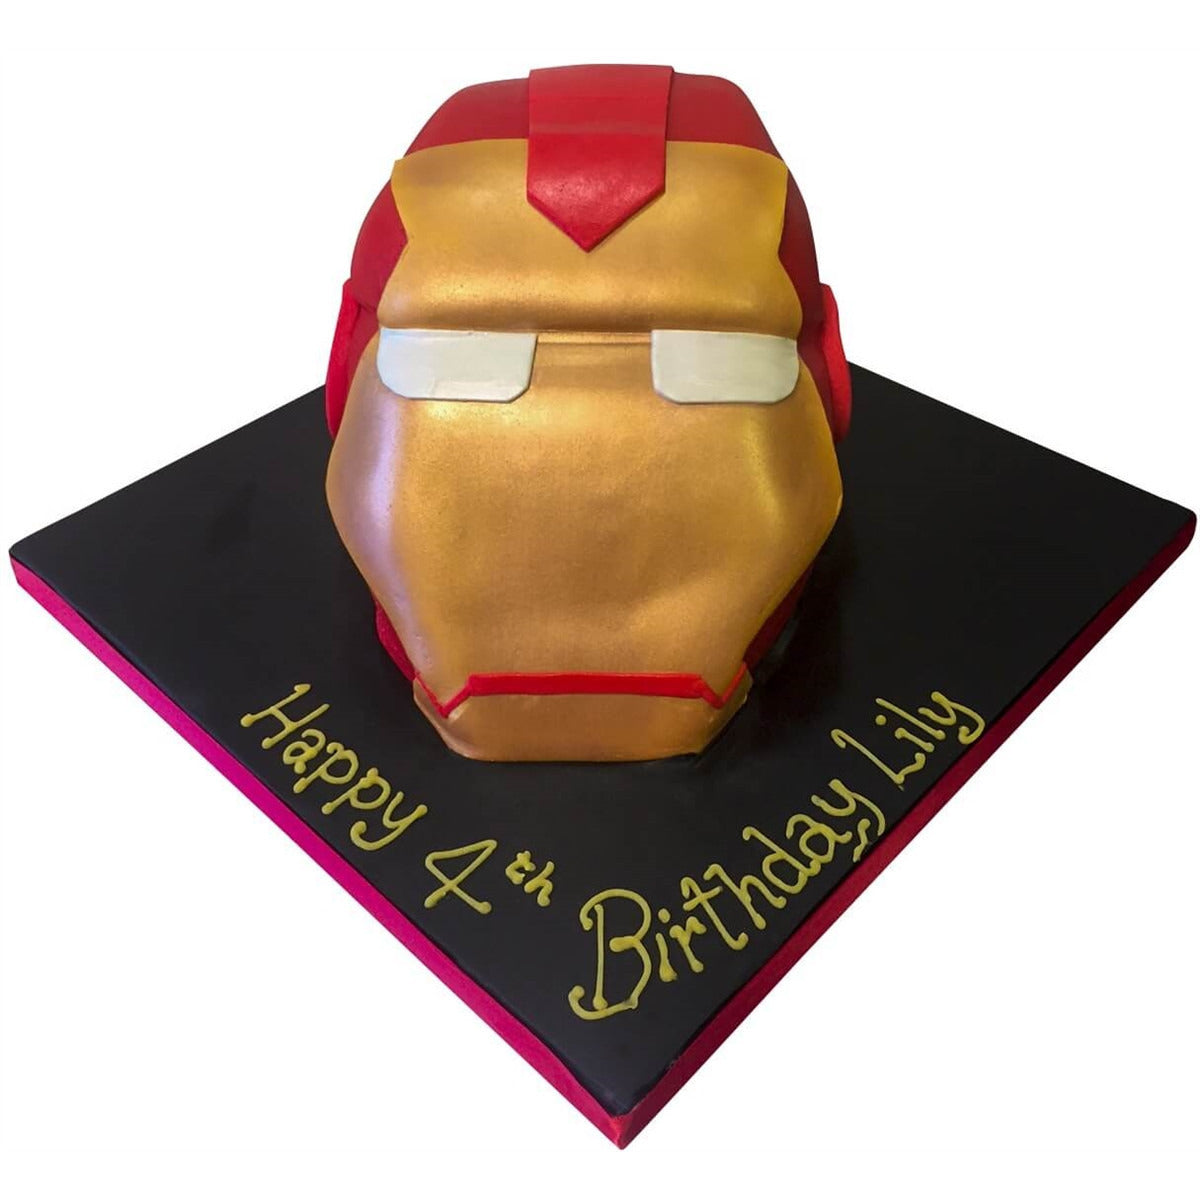 Magnificent Ironman Birthday Cake Buy Online Free Uk Delivery New Cakes Birthday Cards Printable Benkemecafe Filternl